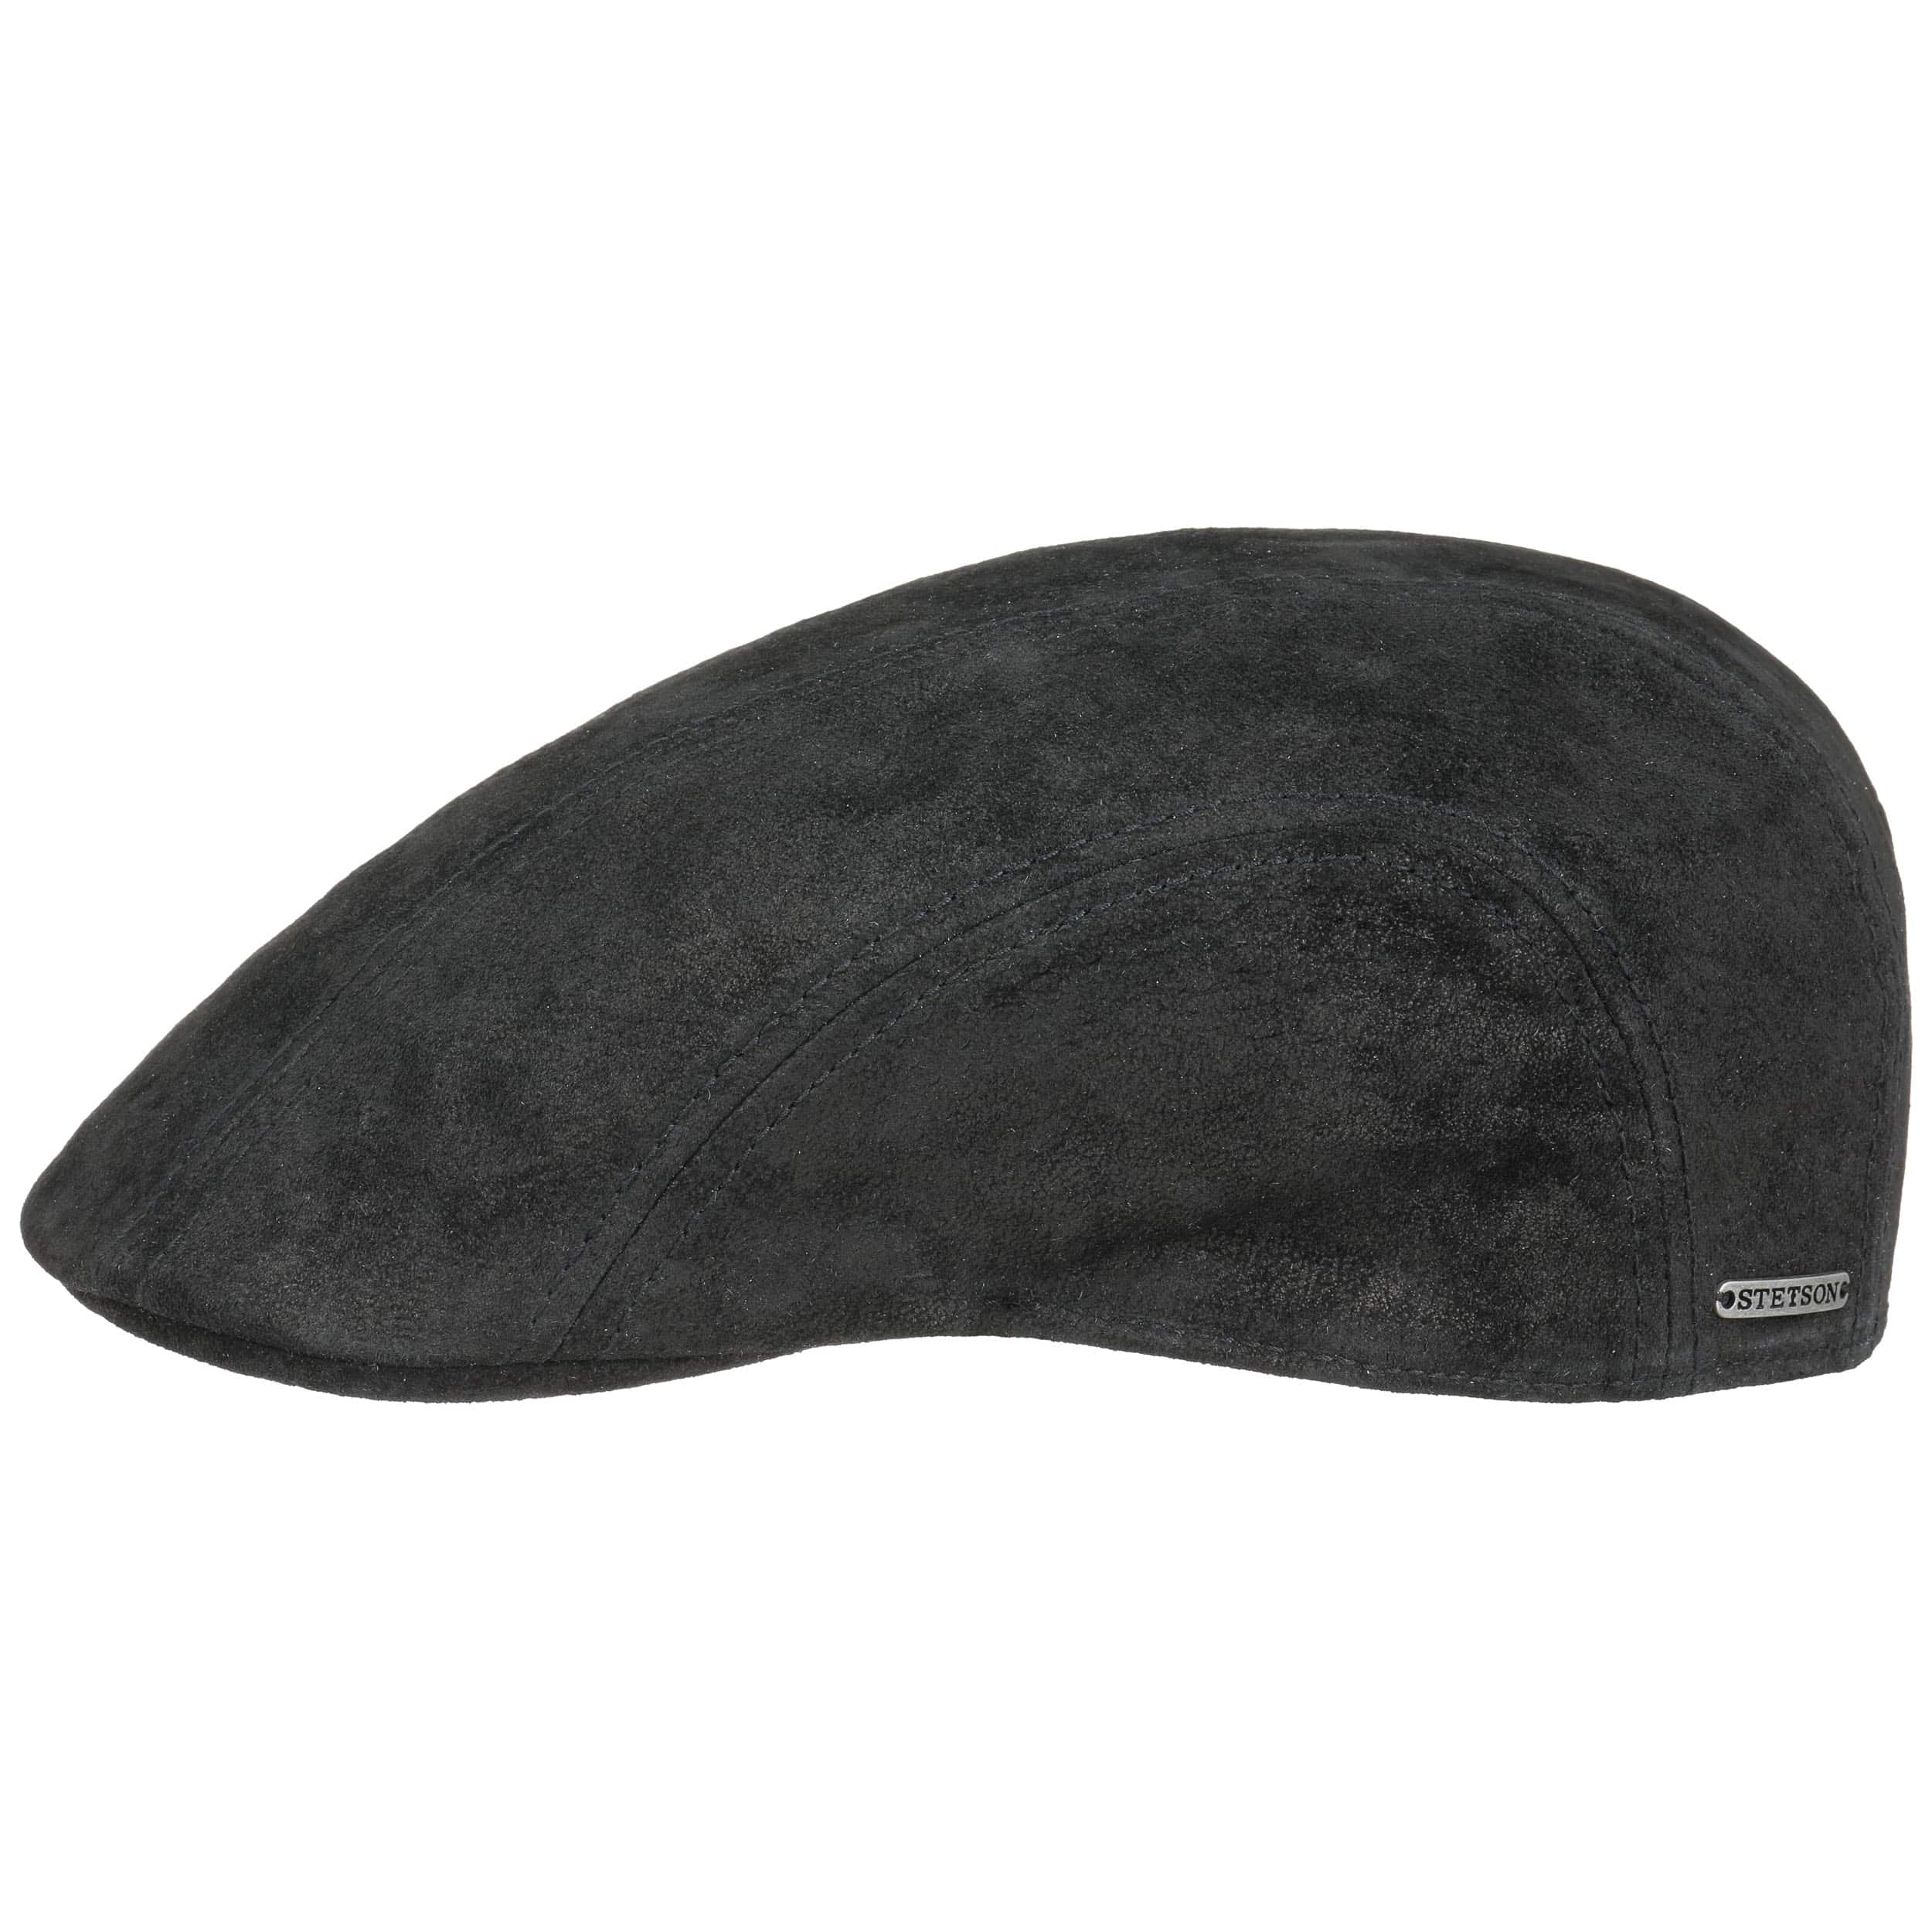 Madison Leather Flat Cap. by Stetson 4fe1a5c127c